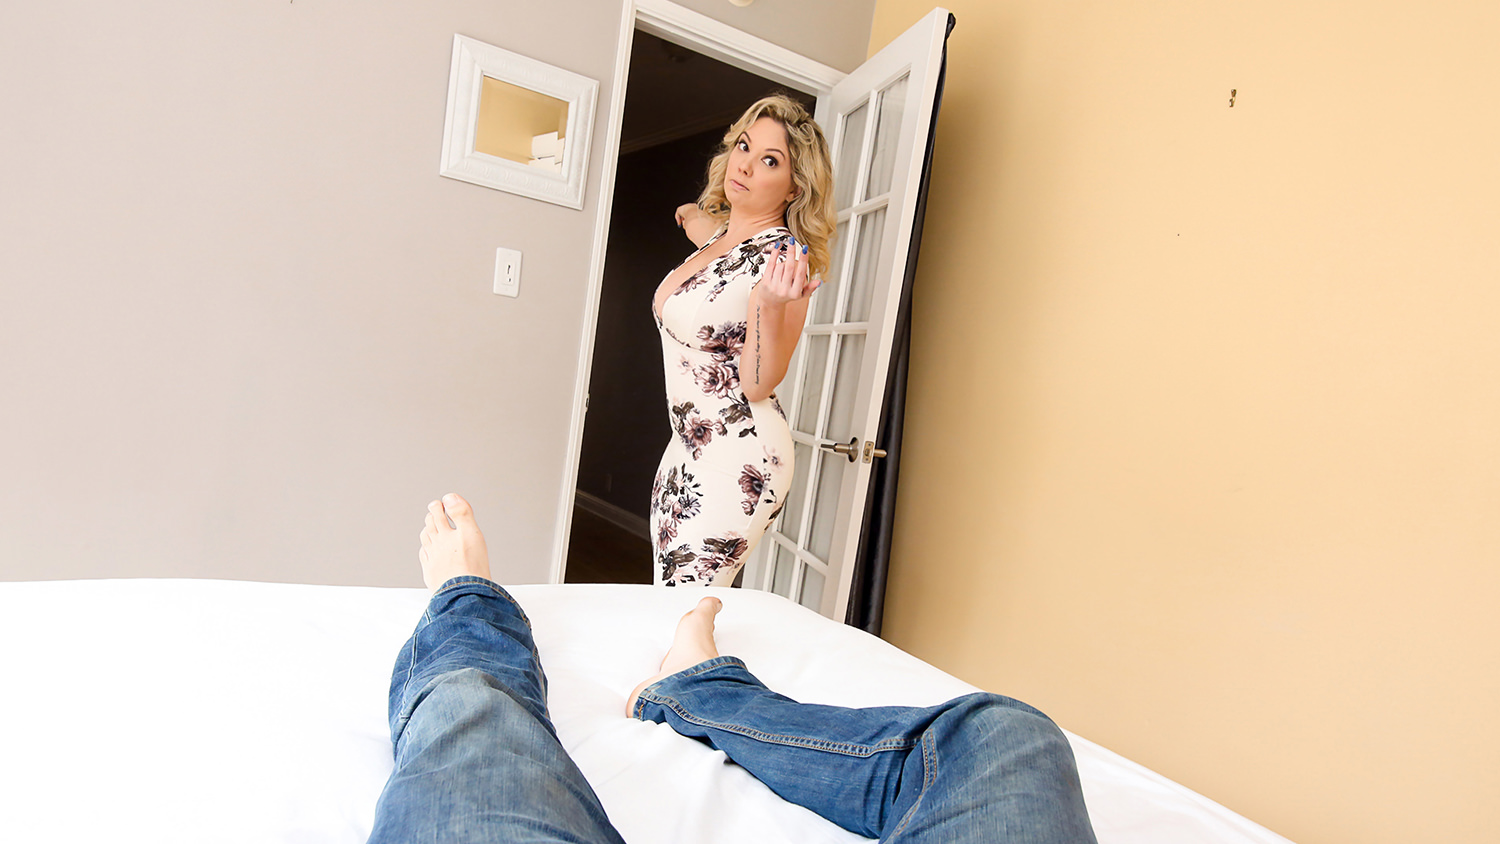 Pervmom christie stevens in The Naughtiest Bustiest Milf  Siterip mp4 Mobile+Desktop Teamskeet Siterip